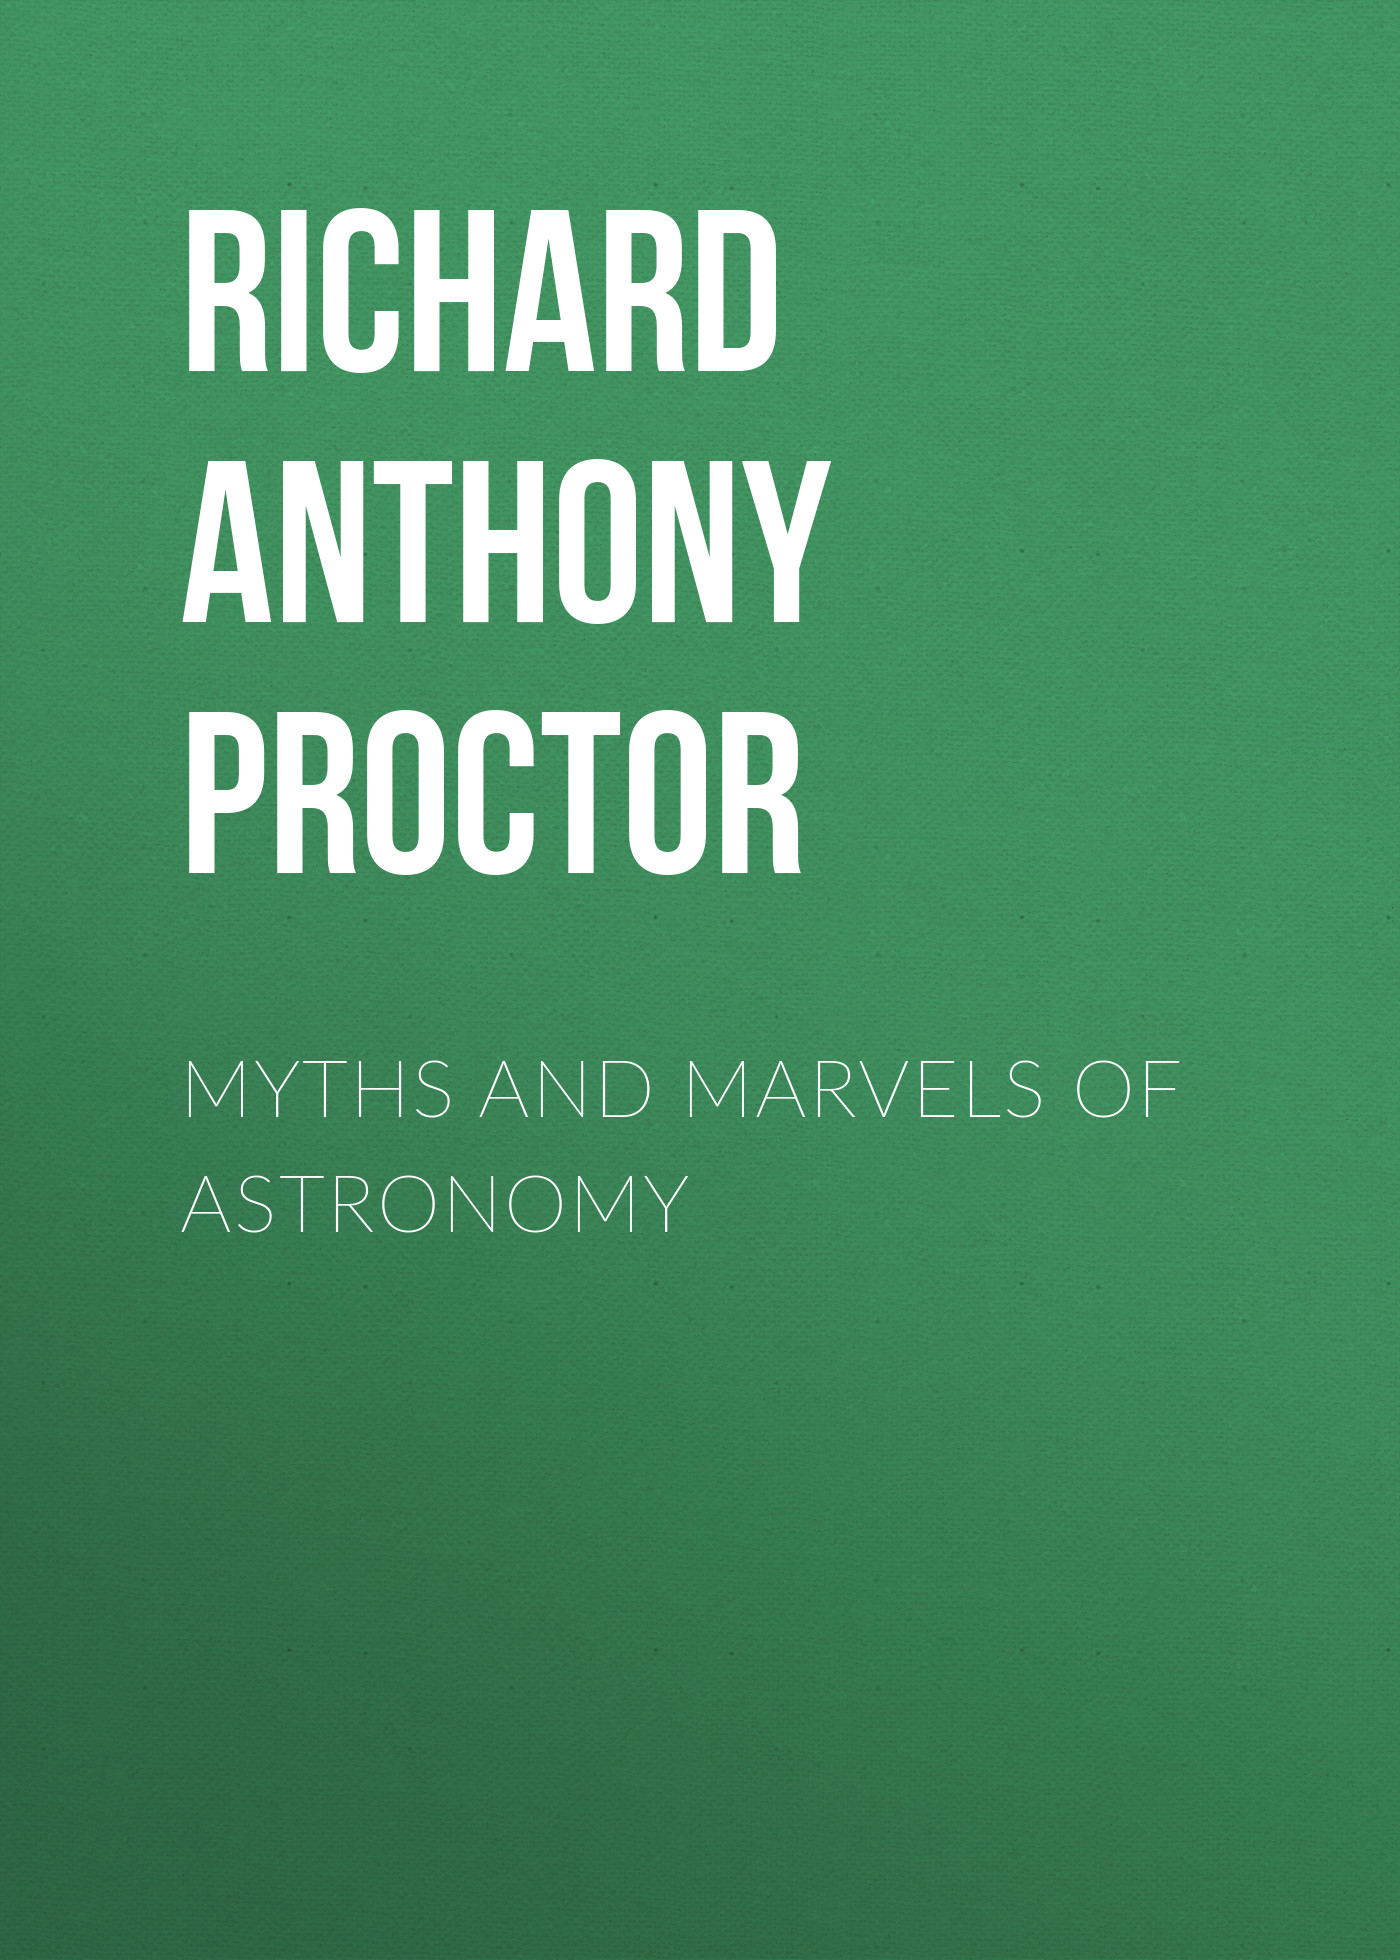 Richard Anthony Proctor Myths and Marvels of Astronomy